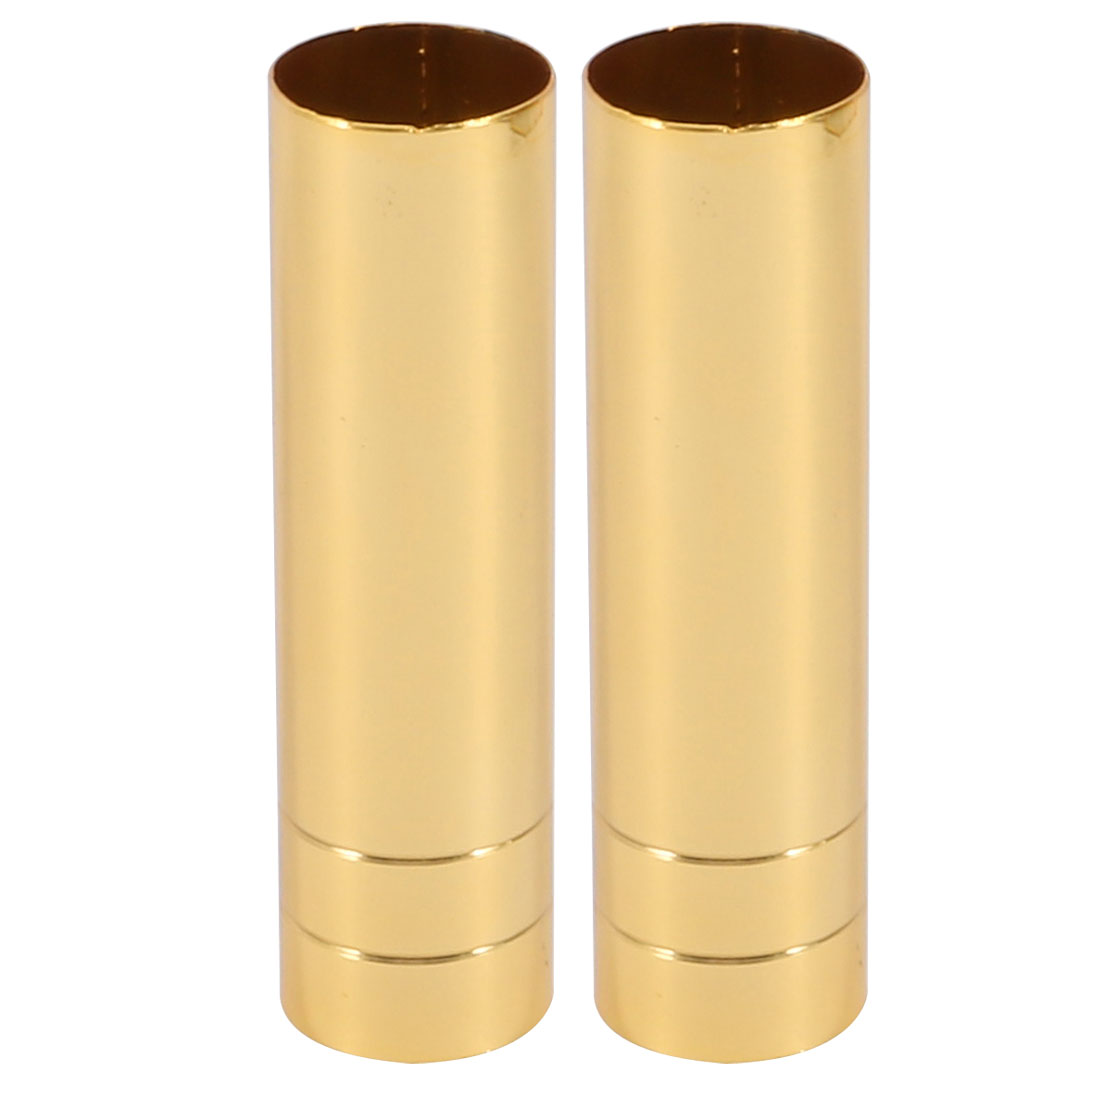 2pcs 25mmx90mm Gold Tone Metal Candle Cover Sleeves Chandelier Socket Covers